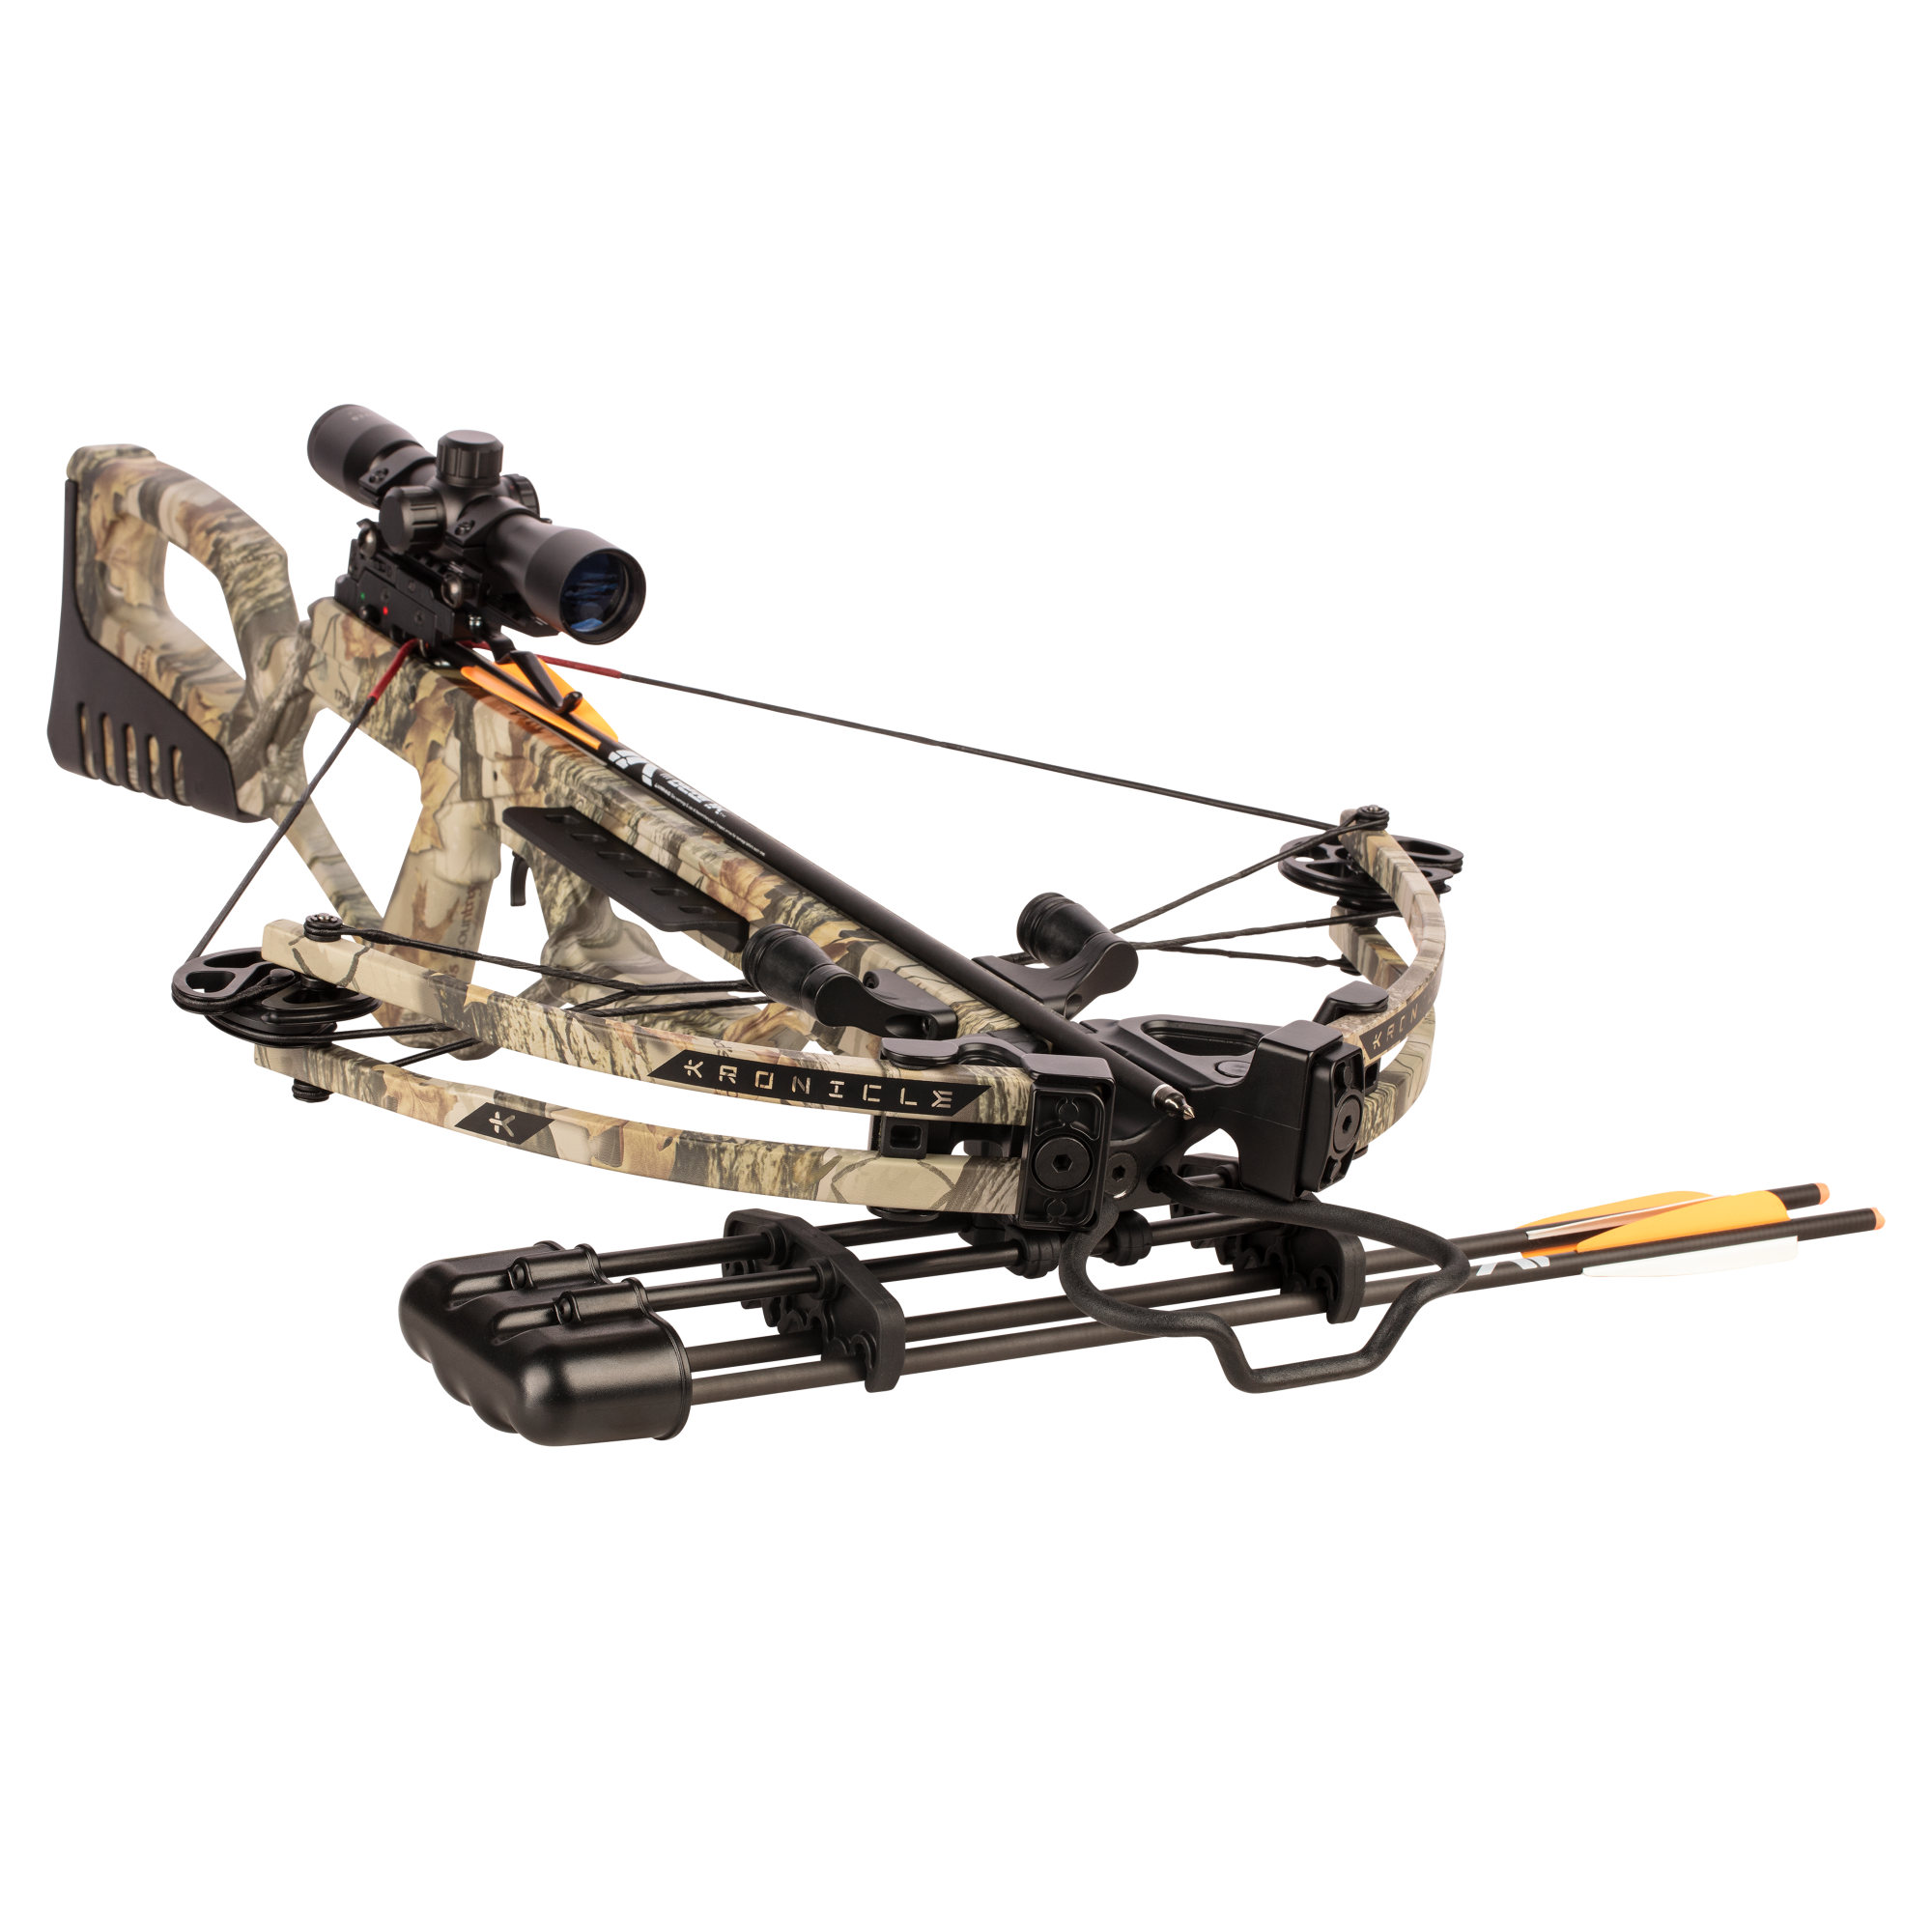 Bear X Kronicle Ready to Shoot Crossbow with Illuminated Scope, Quiver, Bolts, Cocking Rope, and Wax